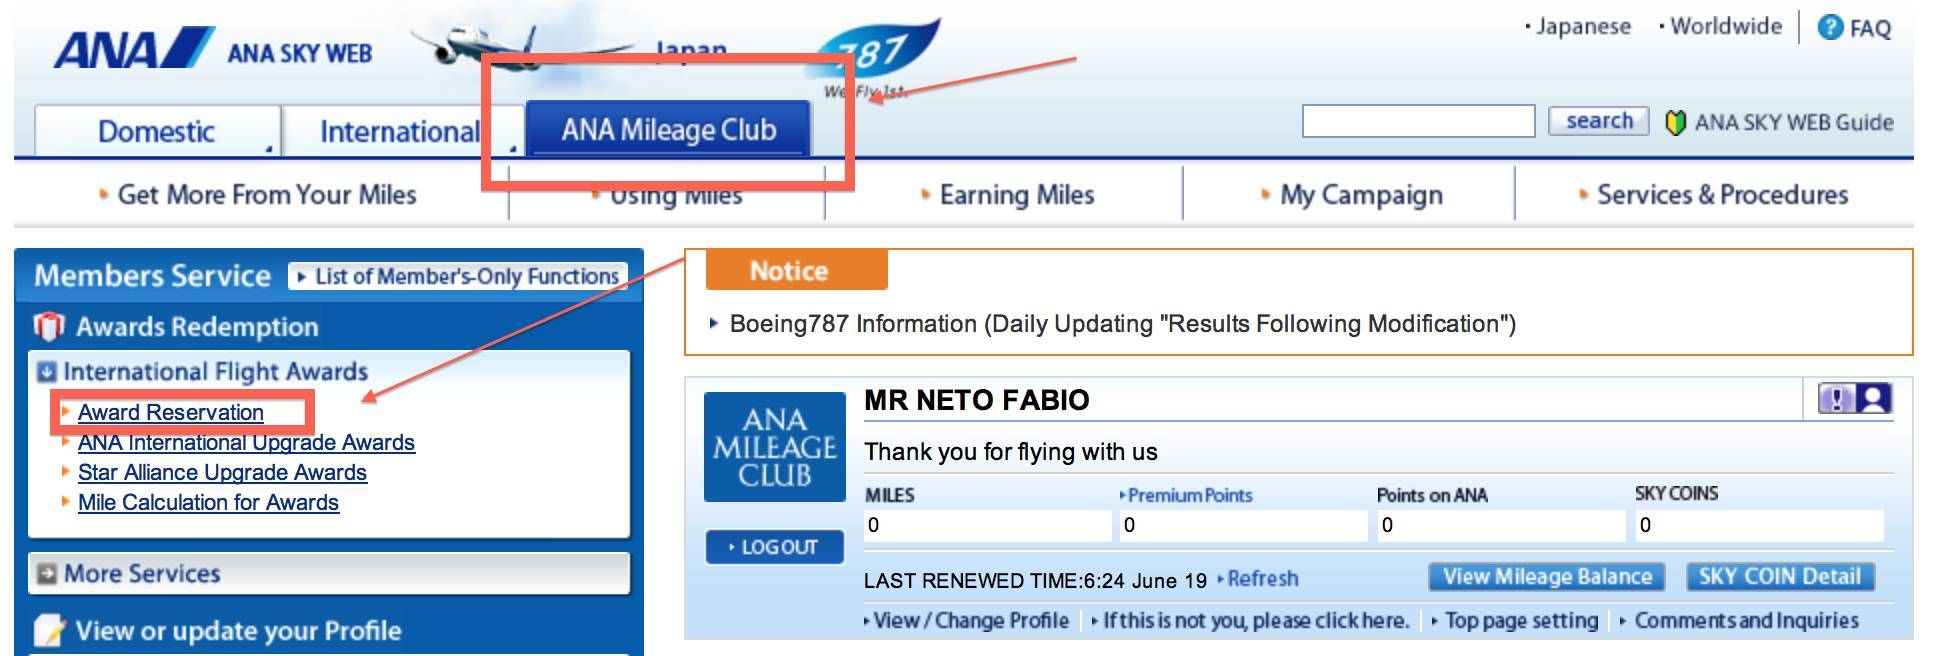 ana mileage club